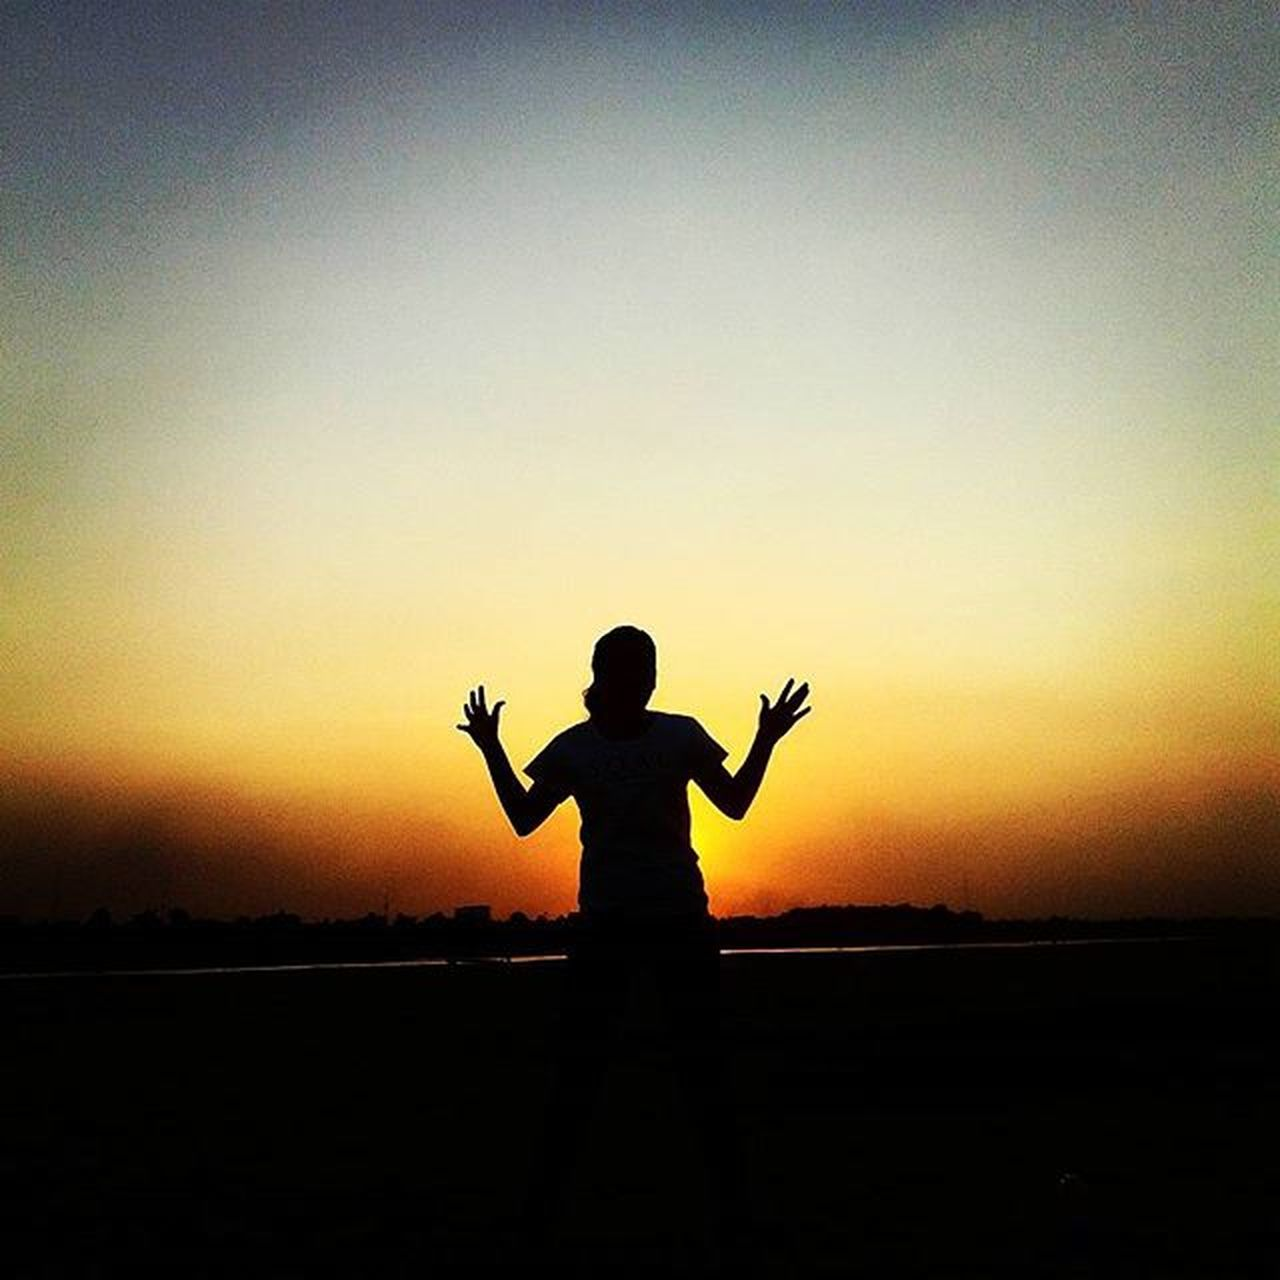 Niddavanh Silhouette Shape Shadows Sunsetonthemekong Sunset RedSky Loveofmylife❤️ Johnnelson Lifeasiseeit Exercise Laospdr Vientiane Southeastasia Asianbabe Beautyoflaos Follow Followme